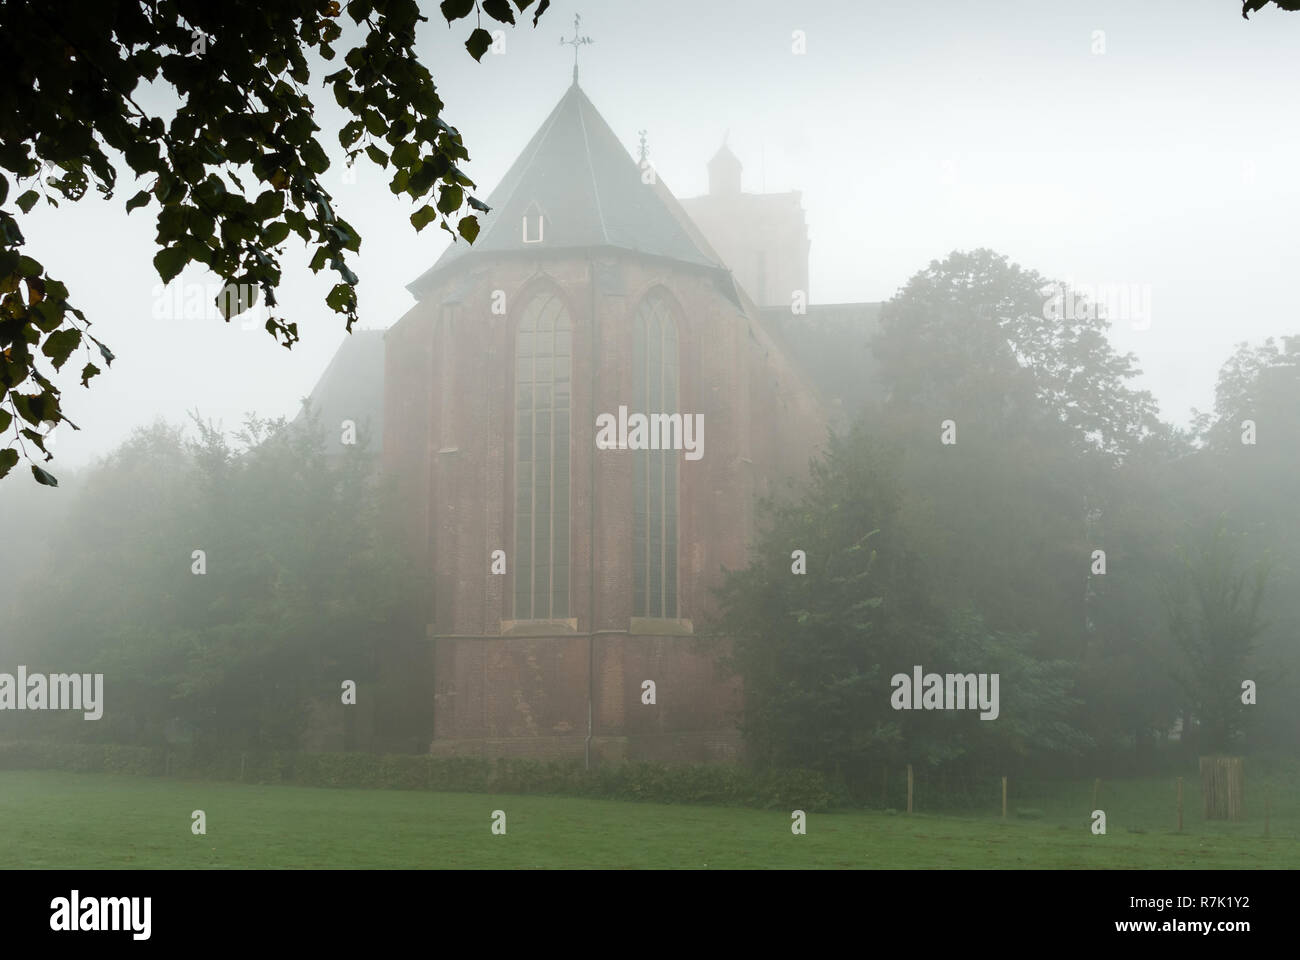 Foggy morning around the church in Elburg, Gelderland, Netherlands - Stock Image